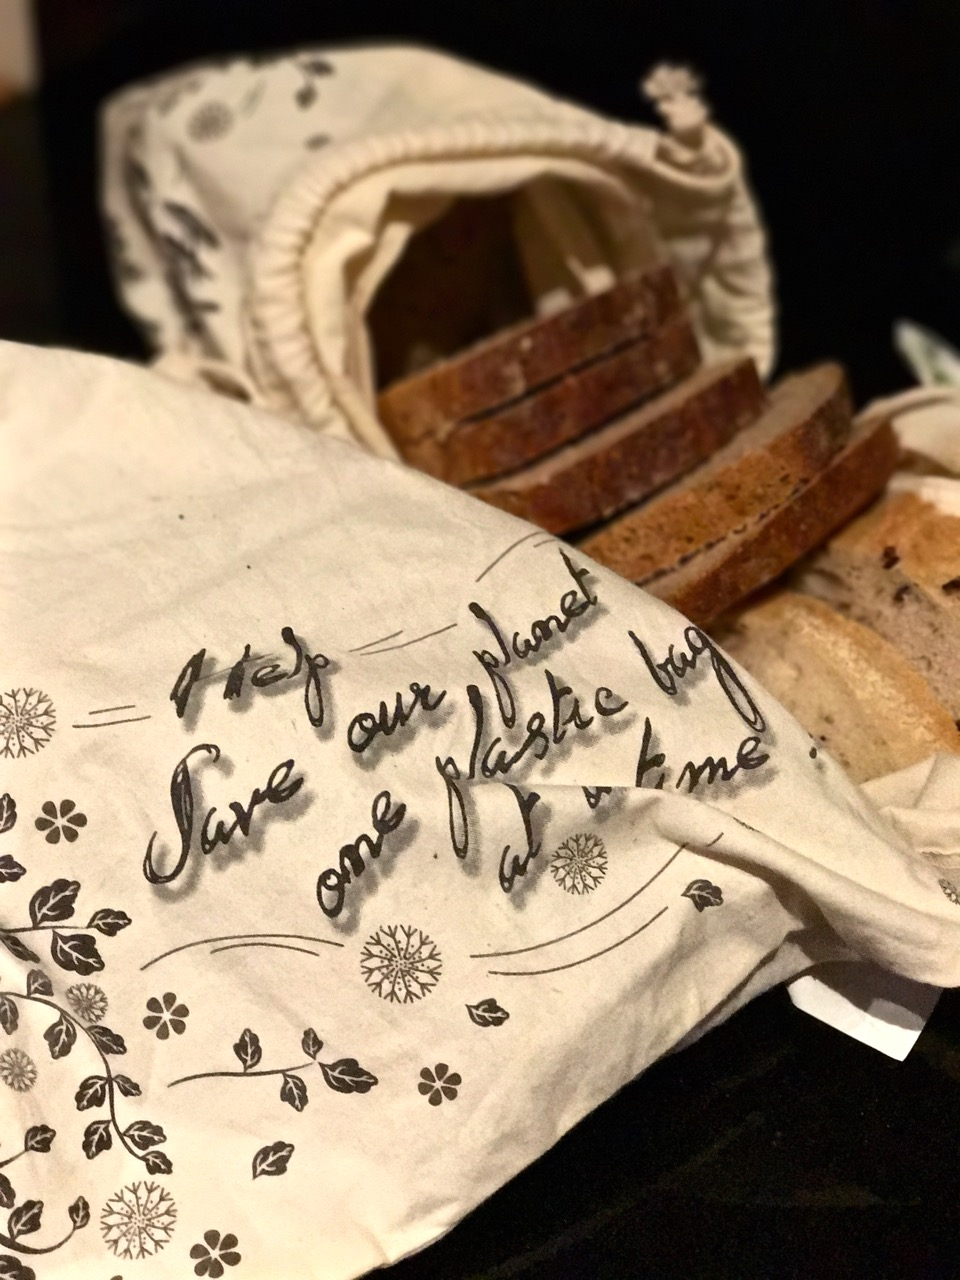 Our weekly bread shop, packed in cloth produce bags  (these are from The Enviro Shop in Northcote, Melbourne, and are made with organic cotton).